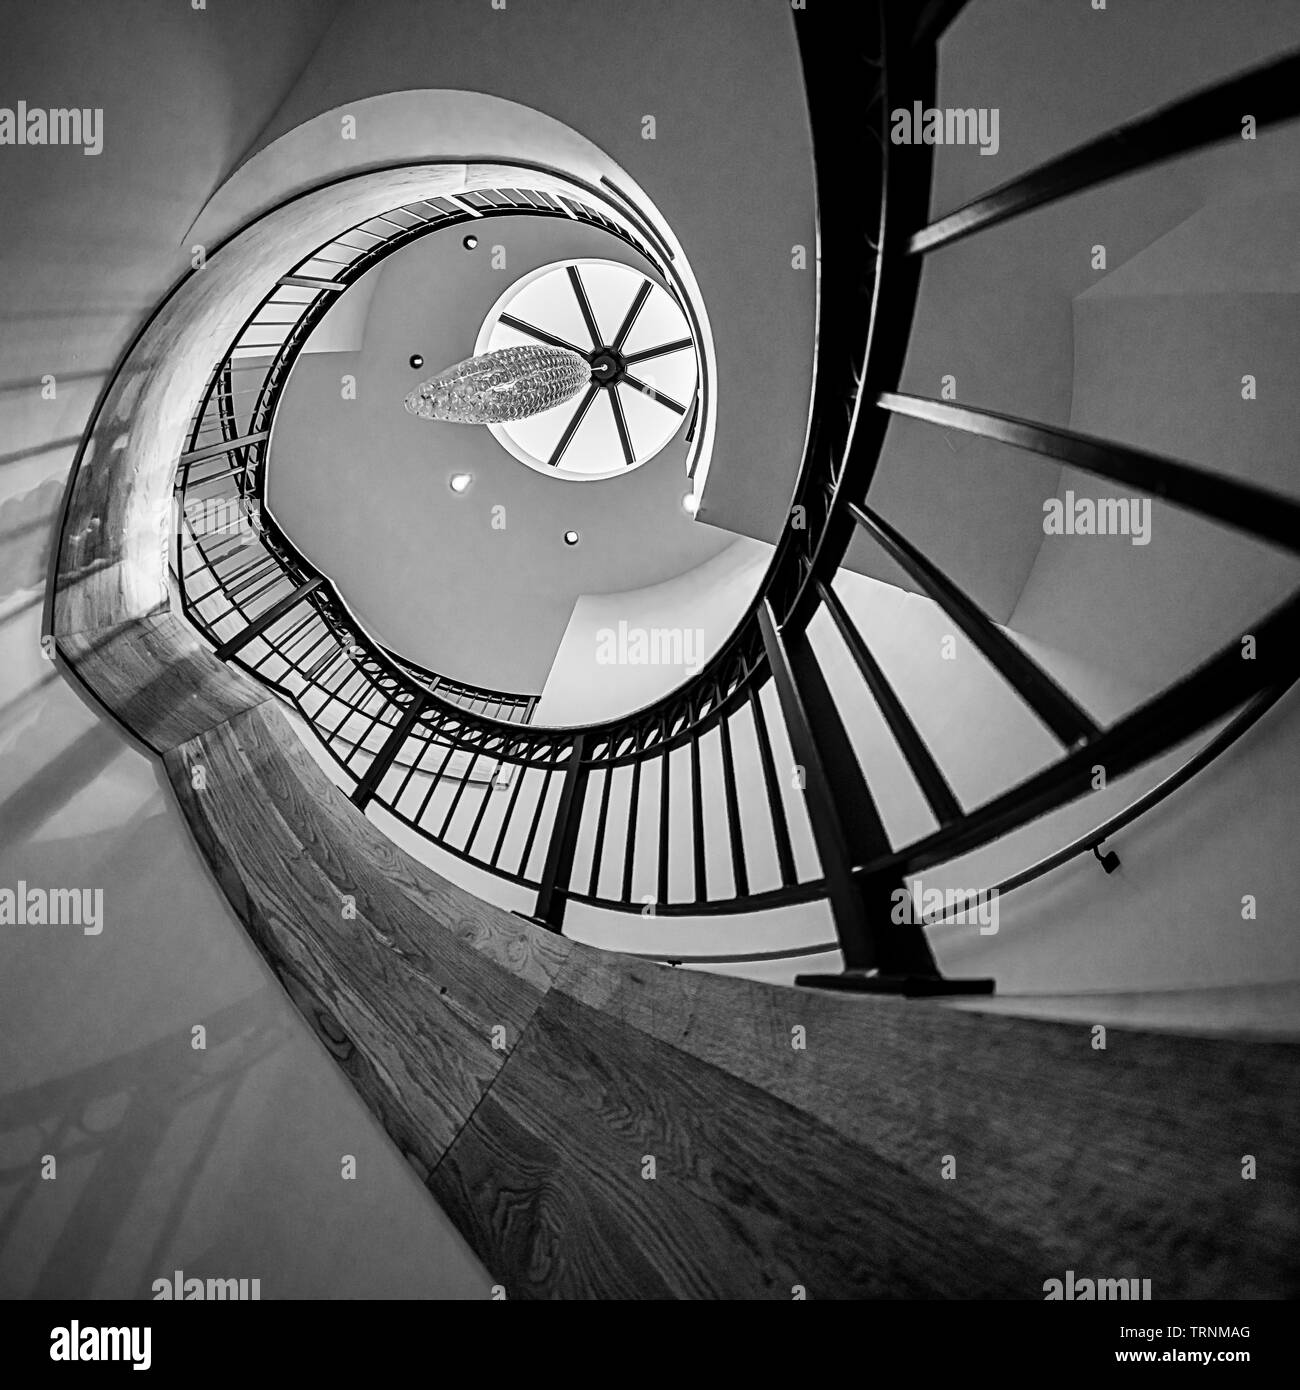 A spiral staircase wraps upward in an extreme helix - Stock Image